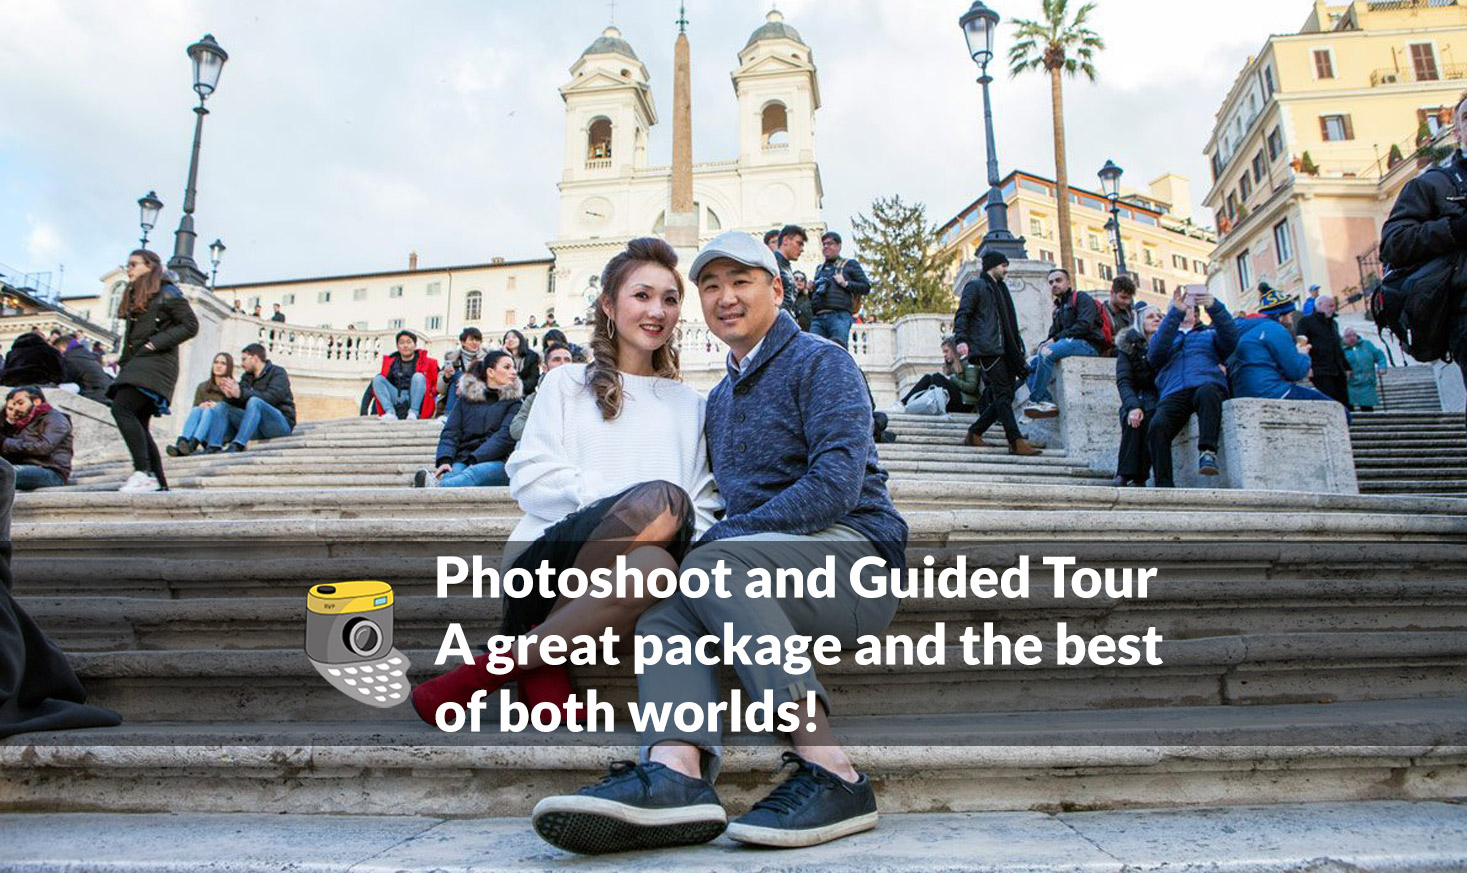 Photoshoot-and-Guided-Tour